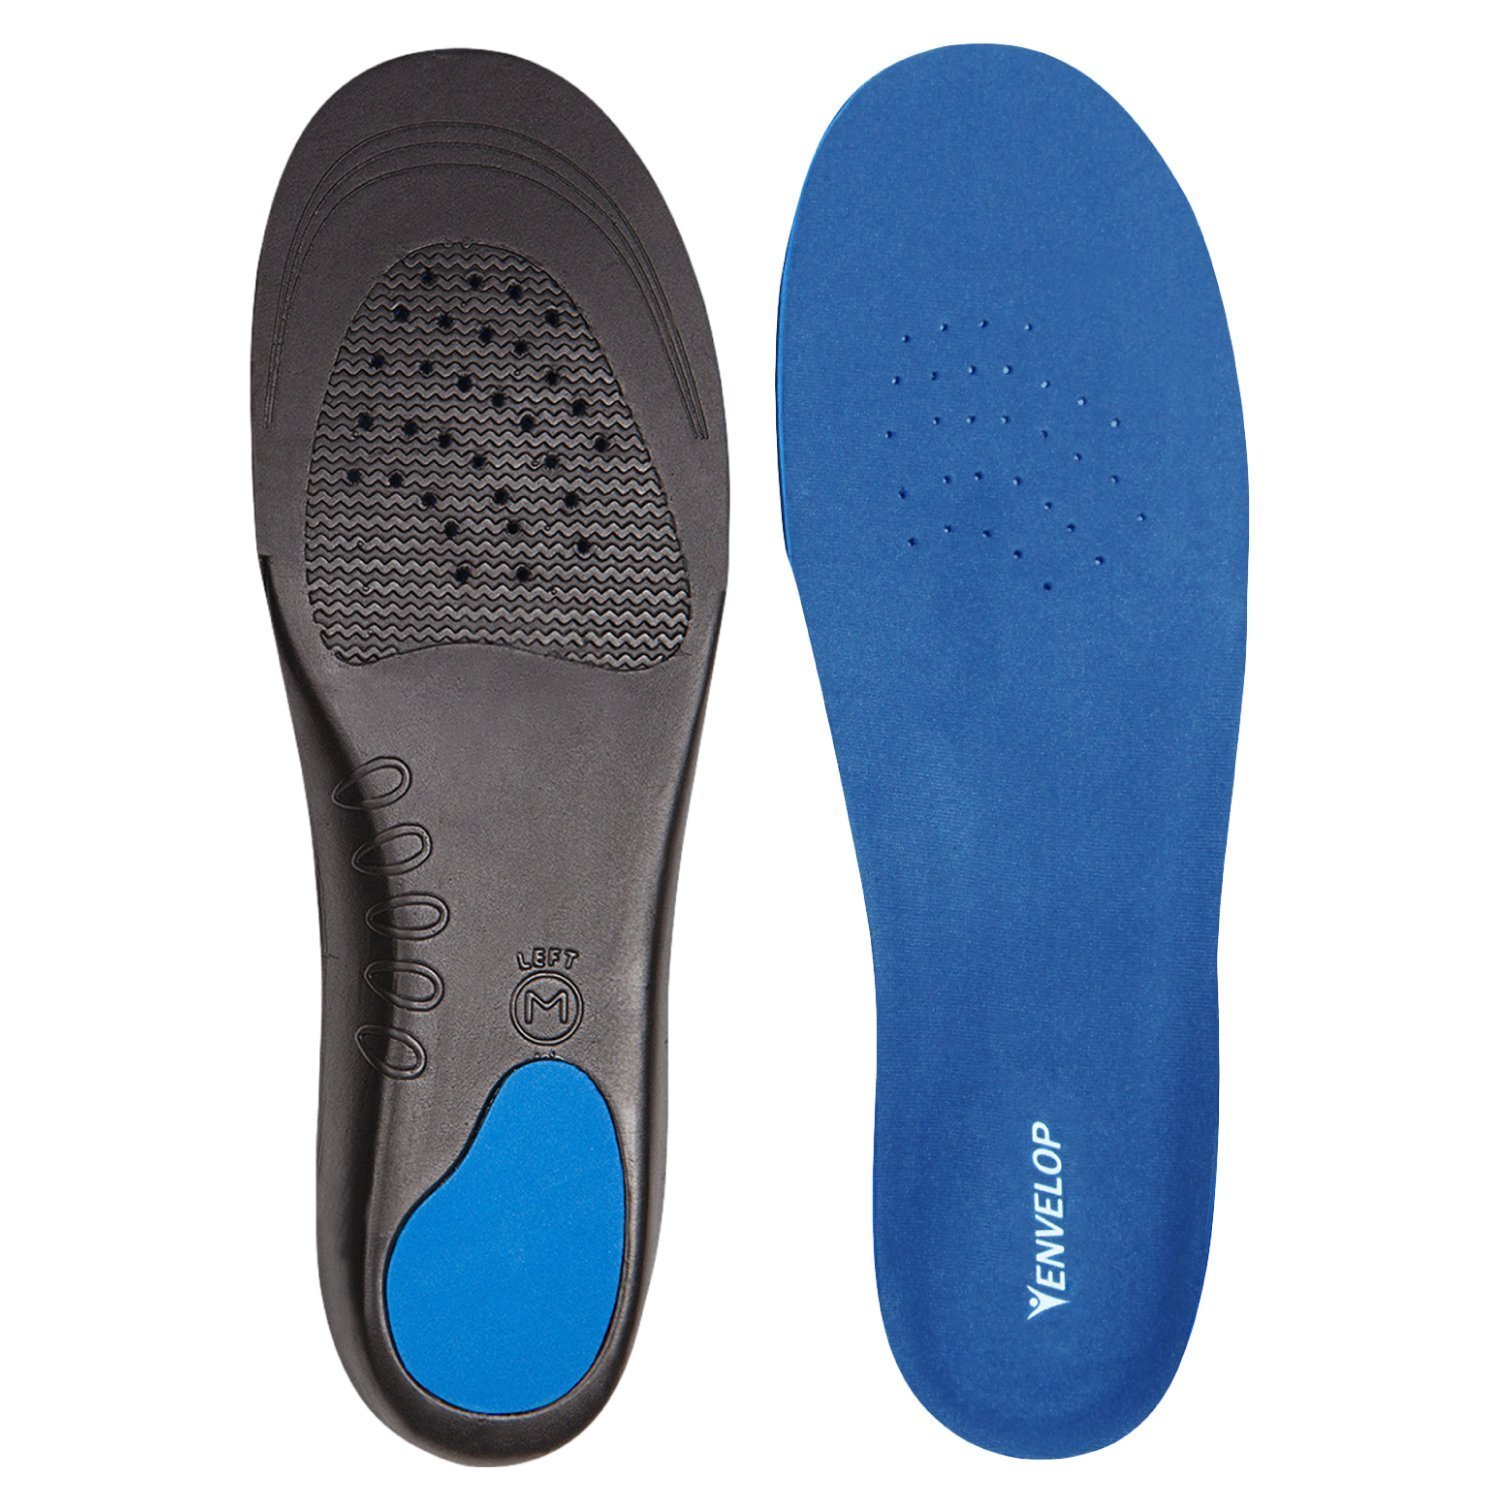 Best Shoes For Orthotics Inserts